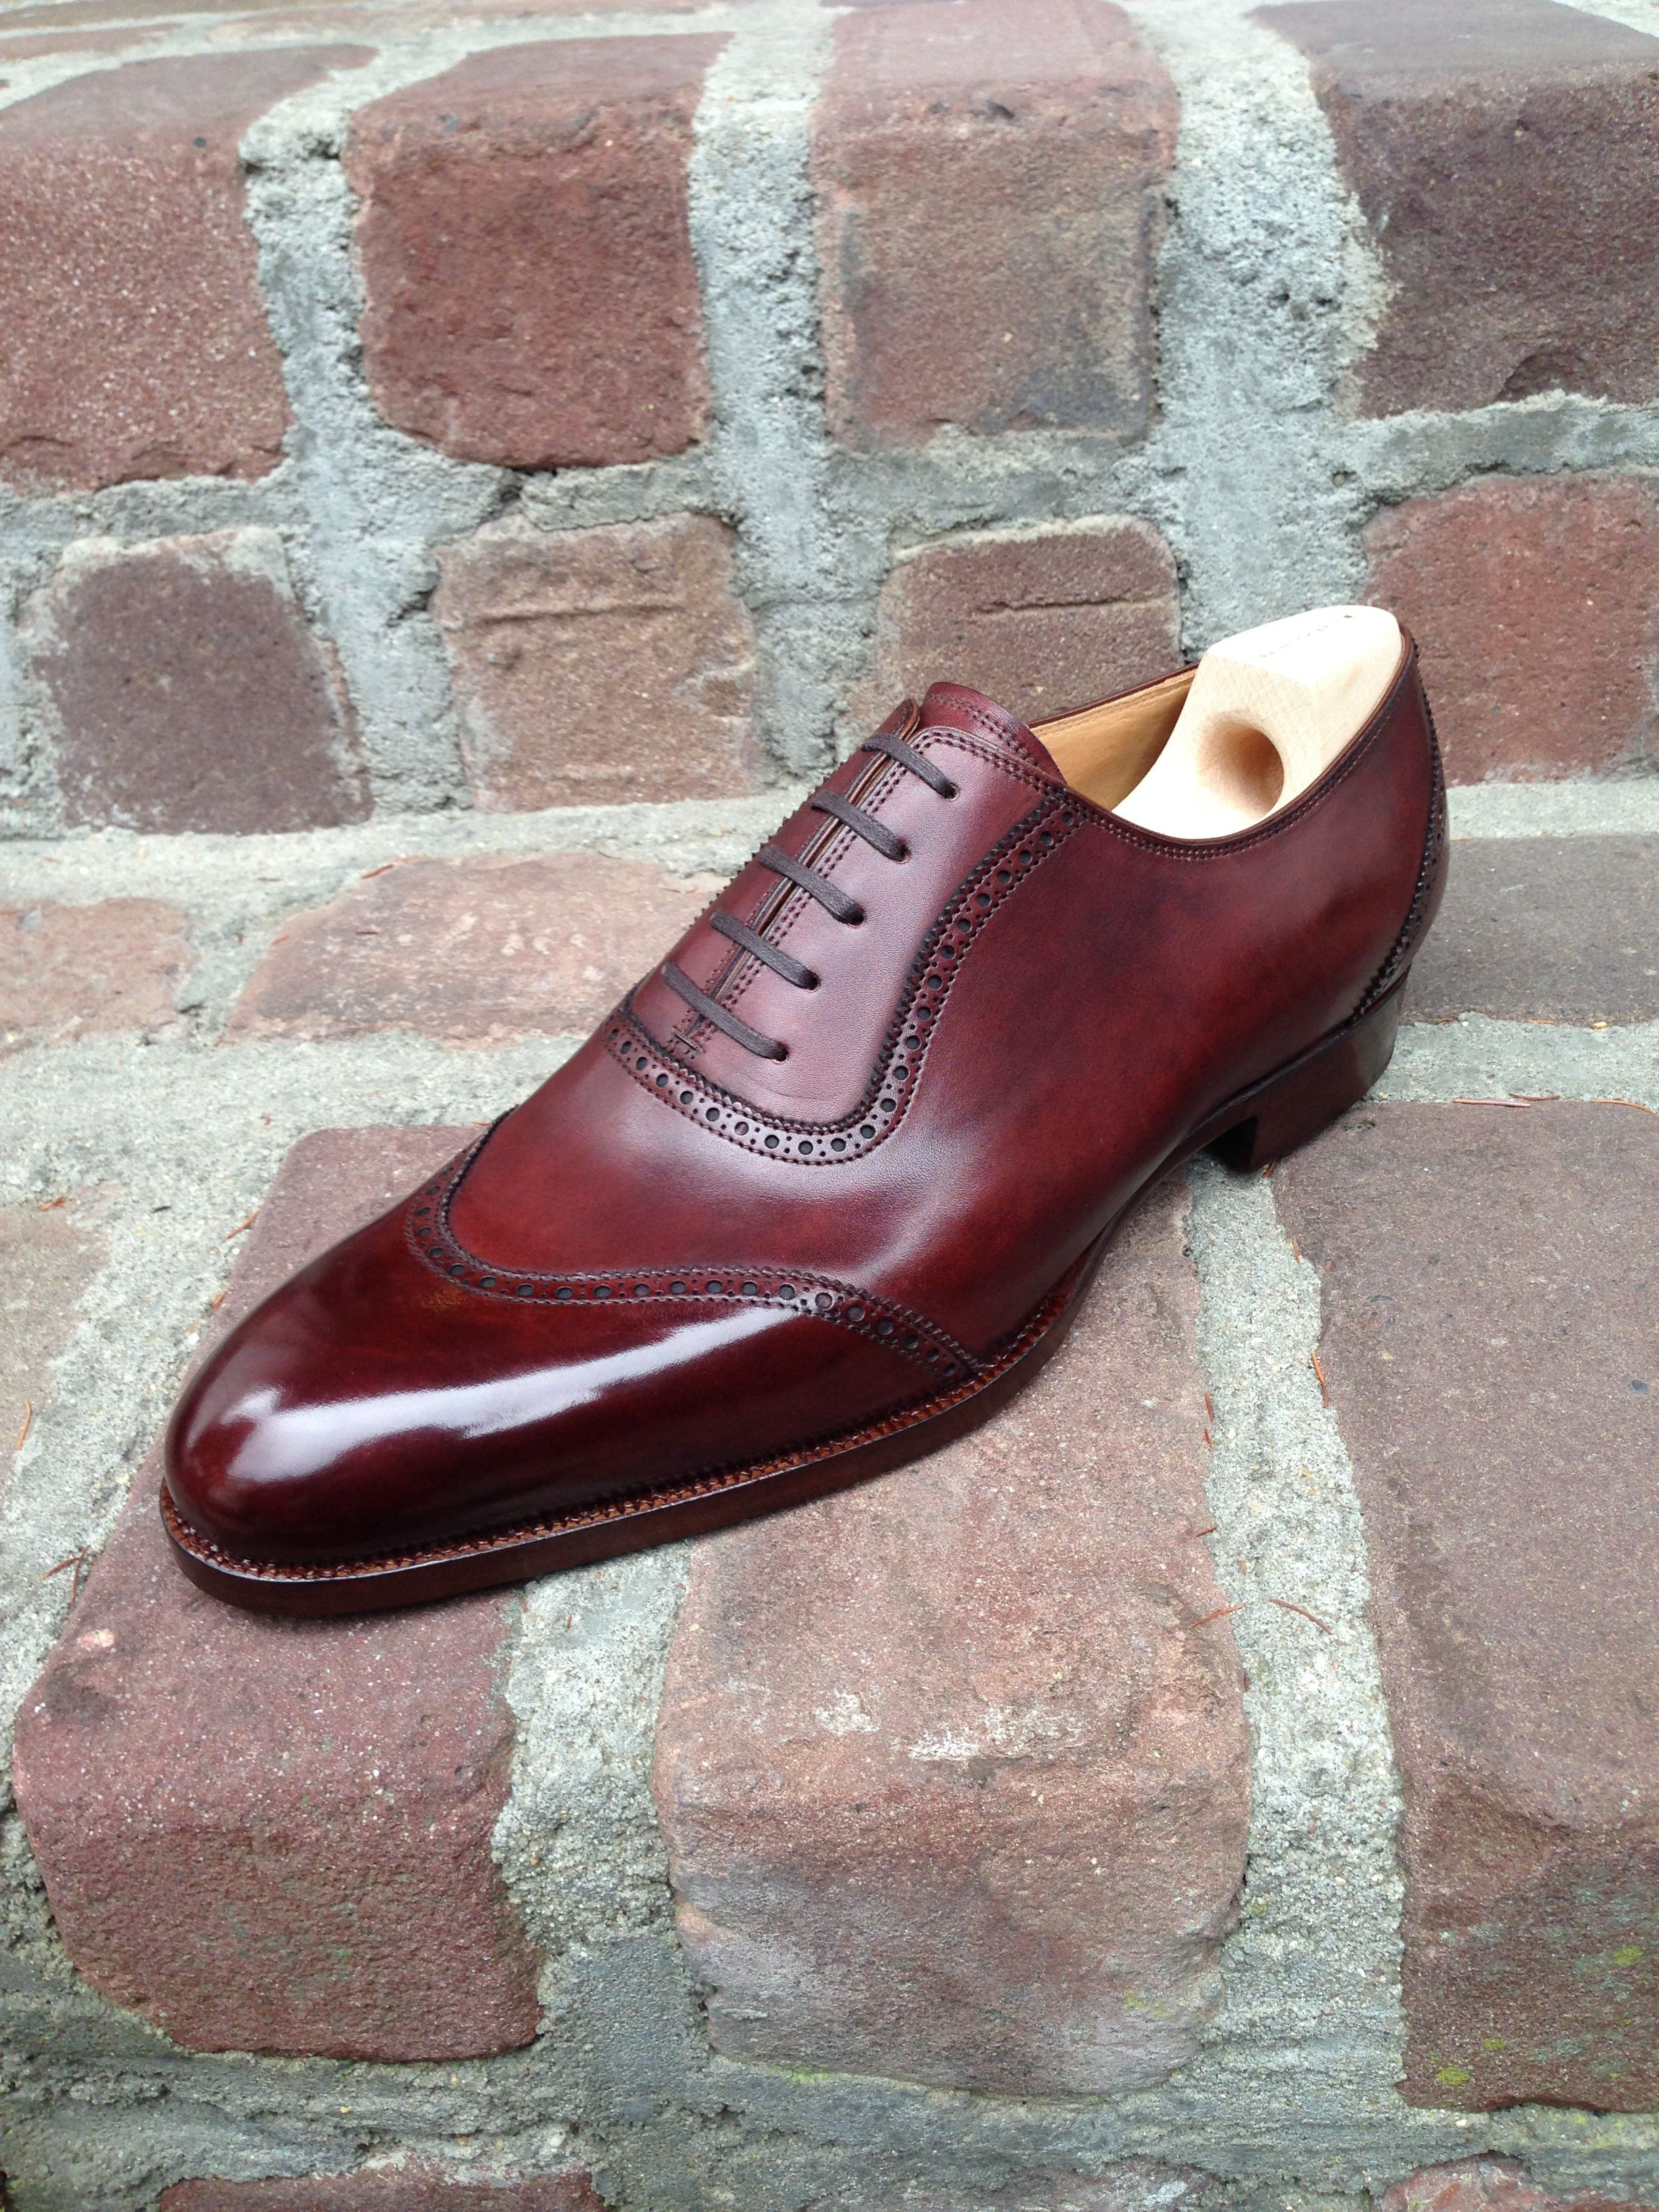 Saint Crispin's mod. 564 U cap toe oxford on classic last